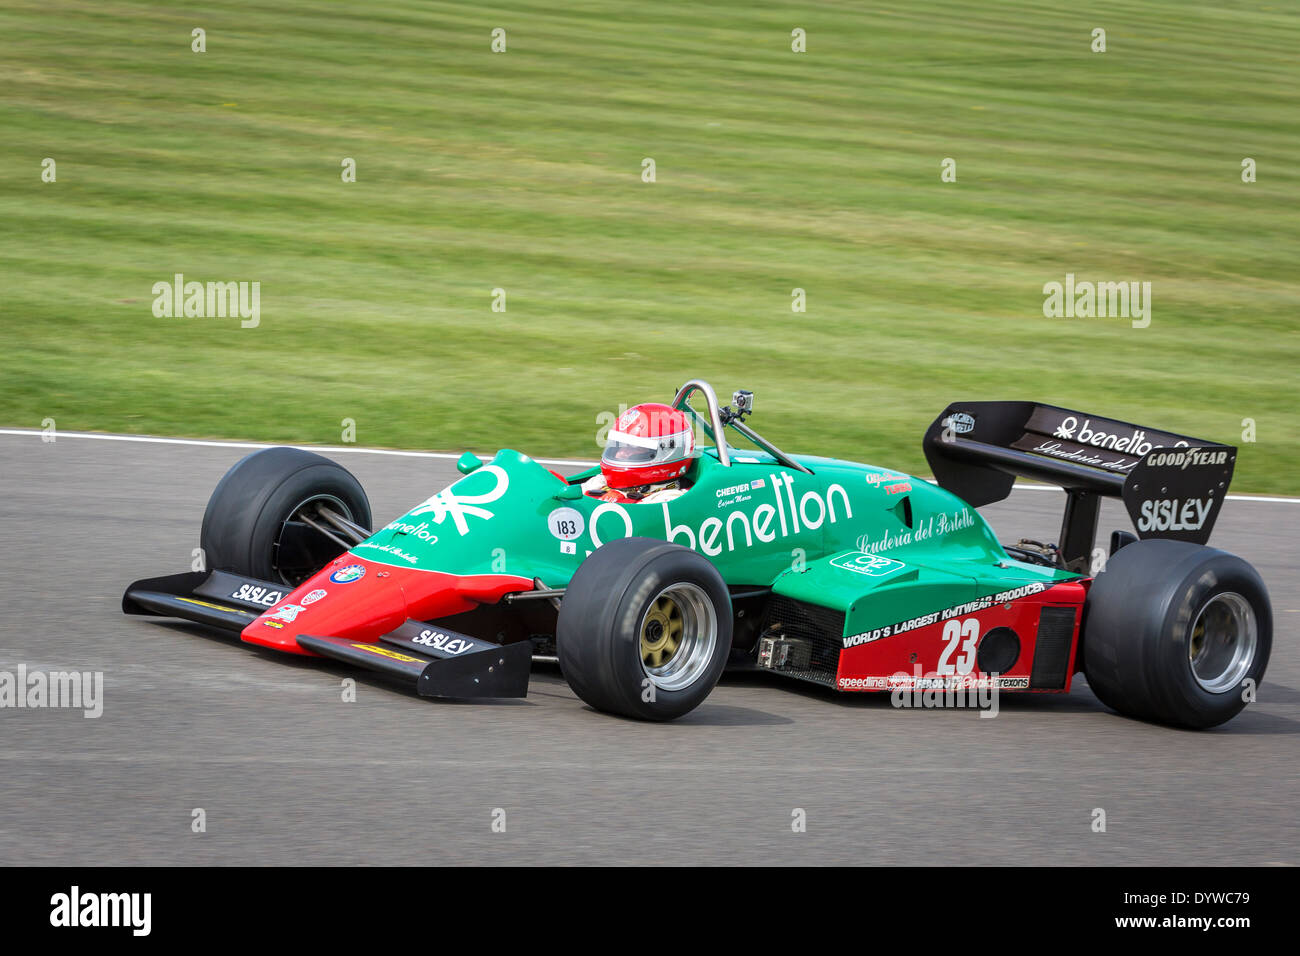 1983 Alfa Romeo Benetton 183T with driver Marco Cajani at the 72nd ...